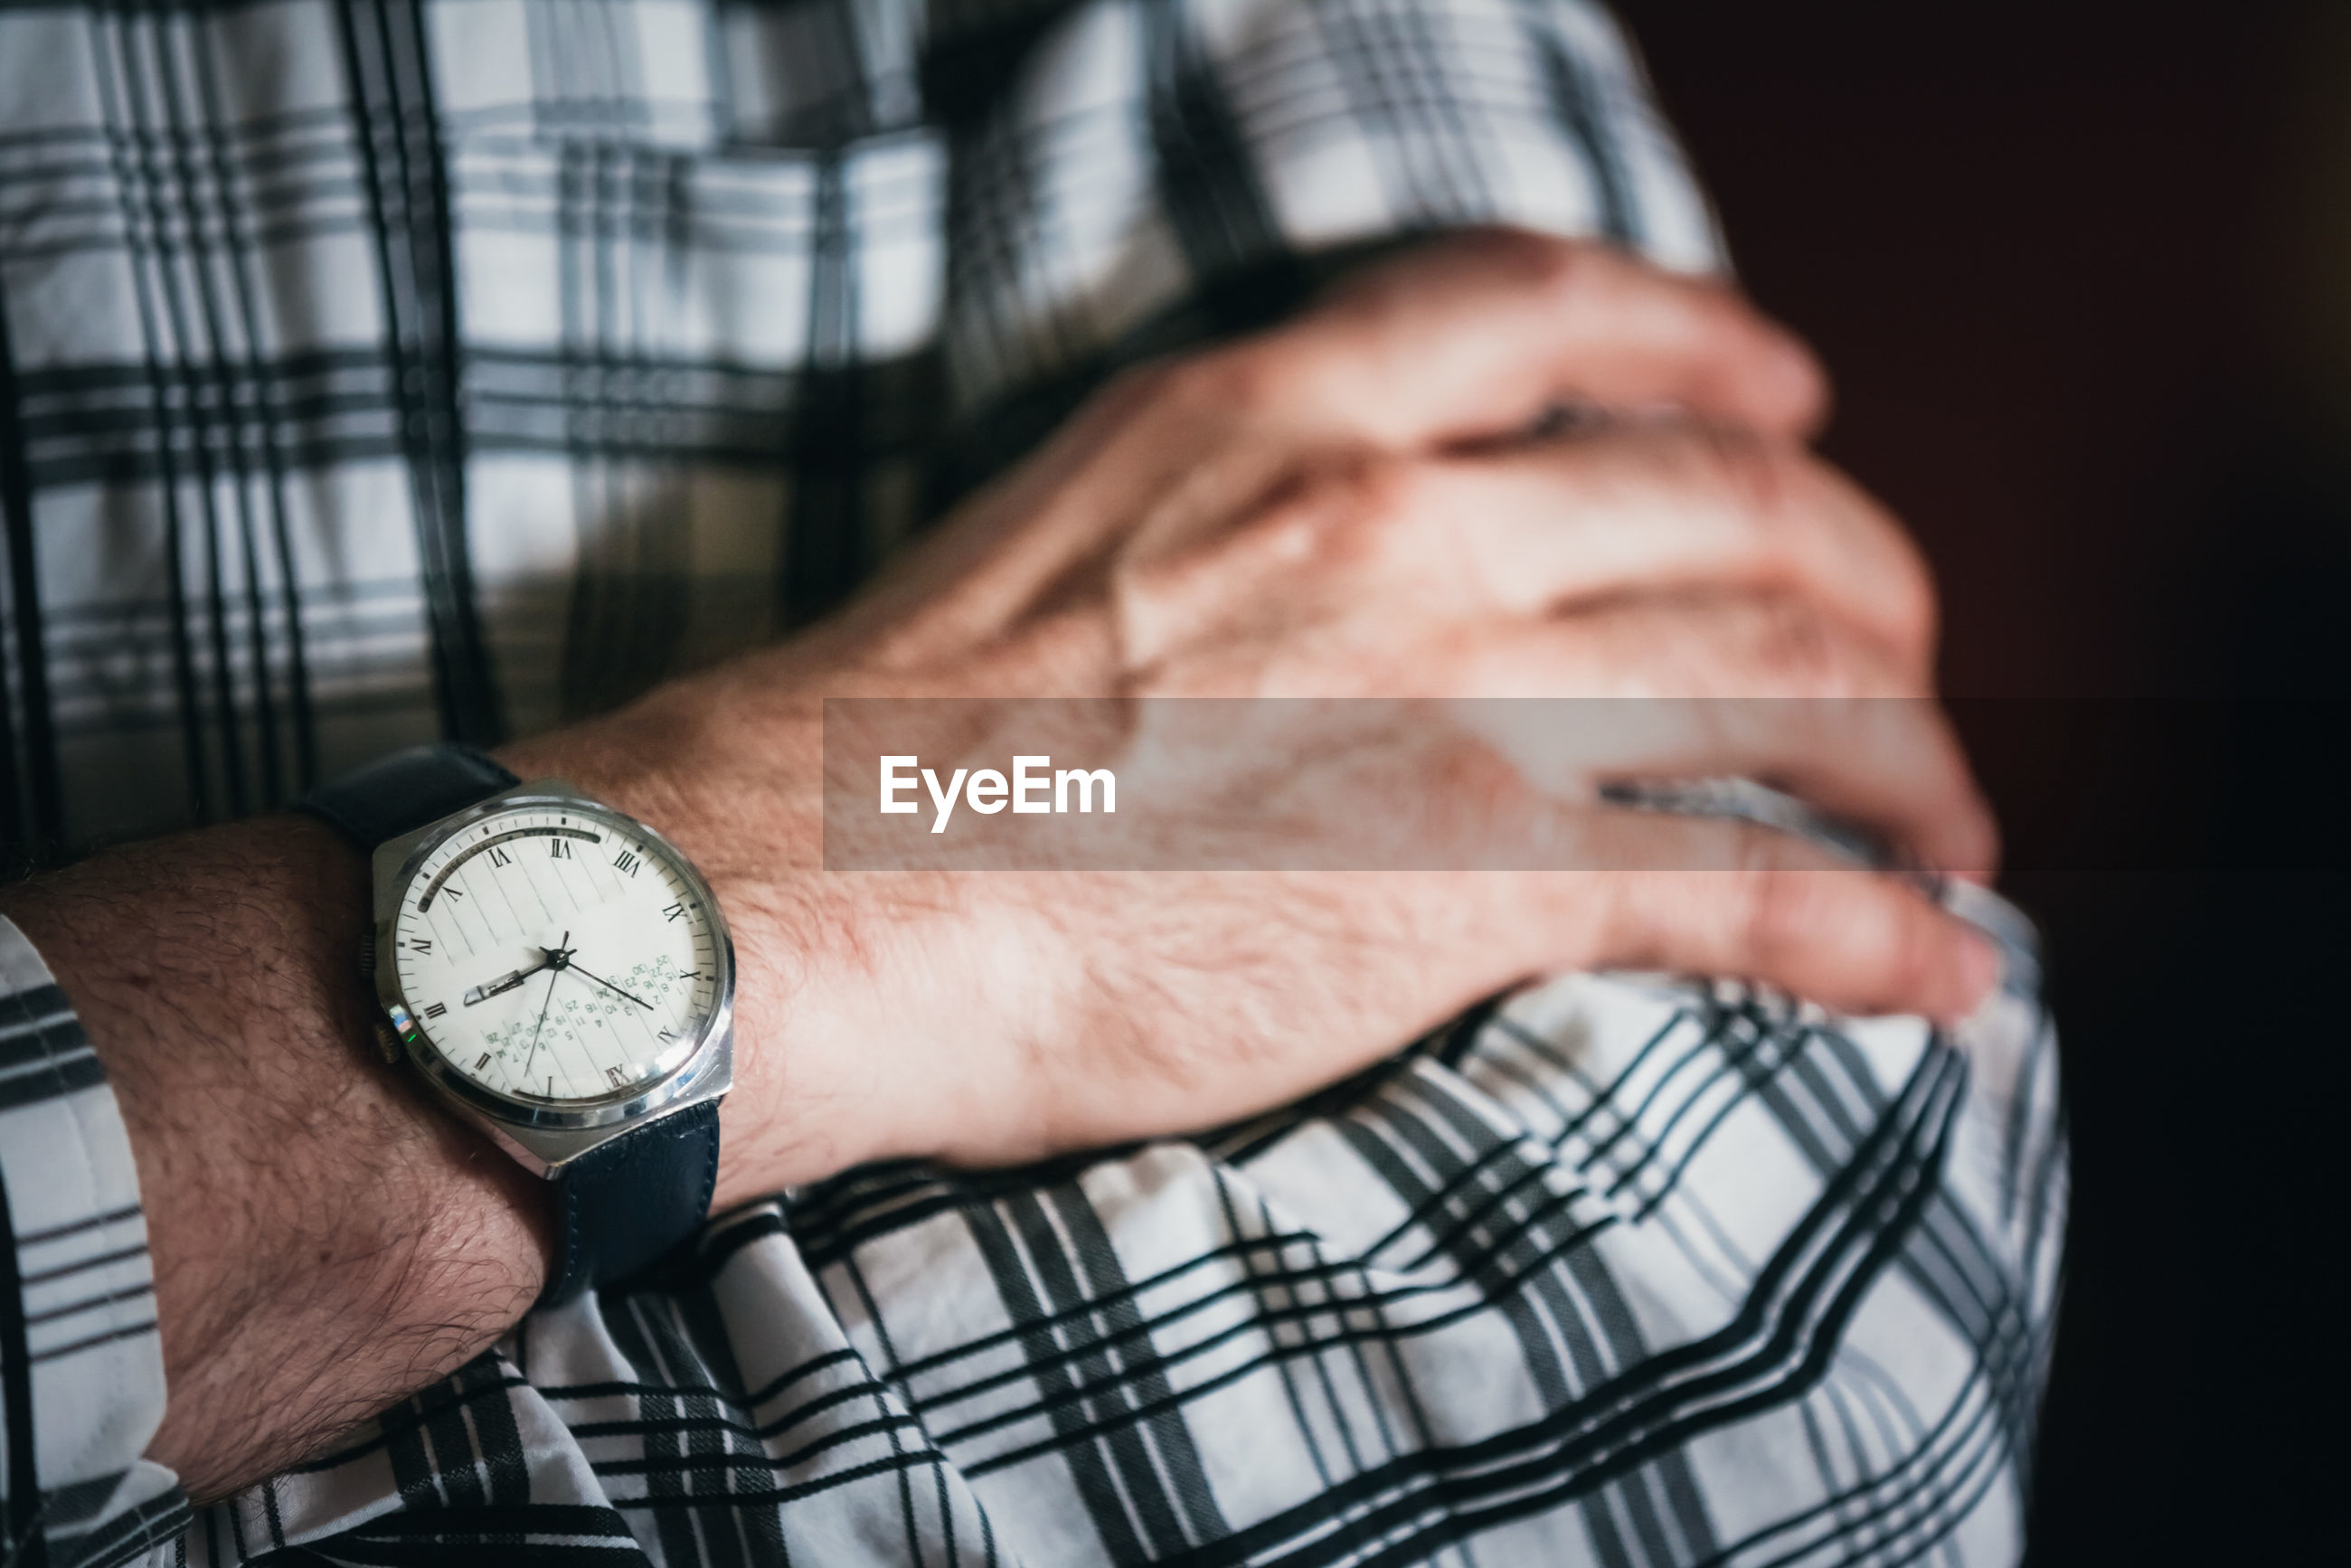 Midsection of man wearing wristwatch